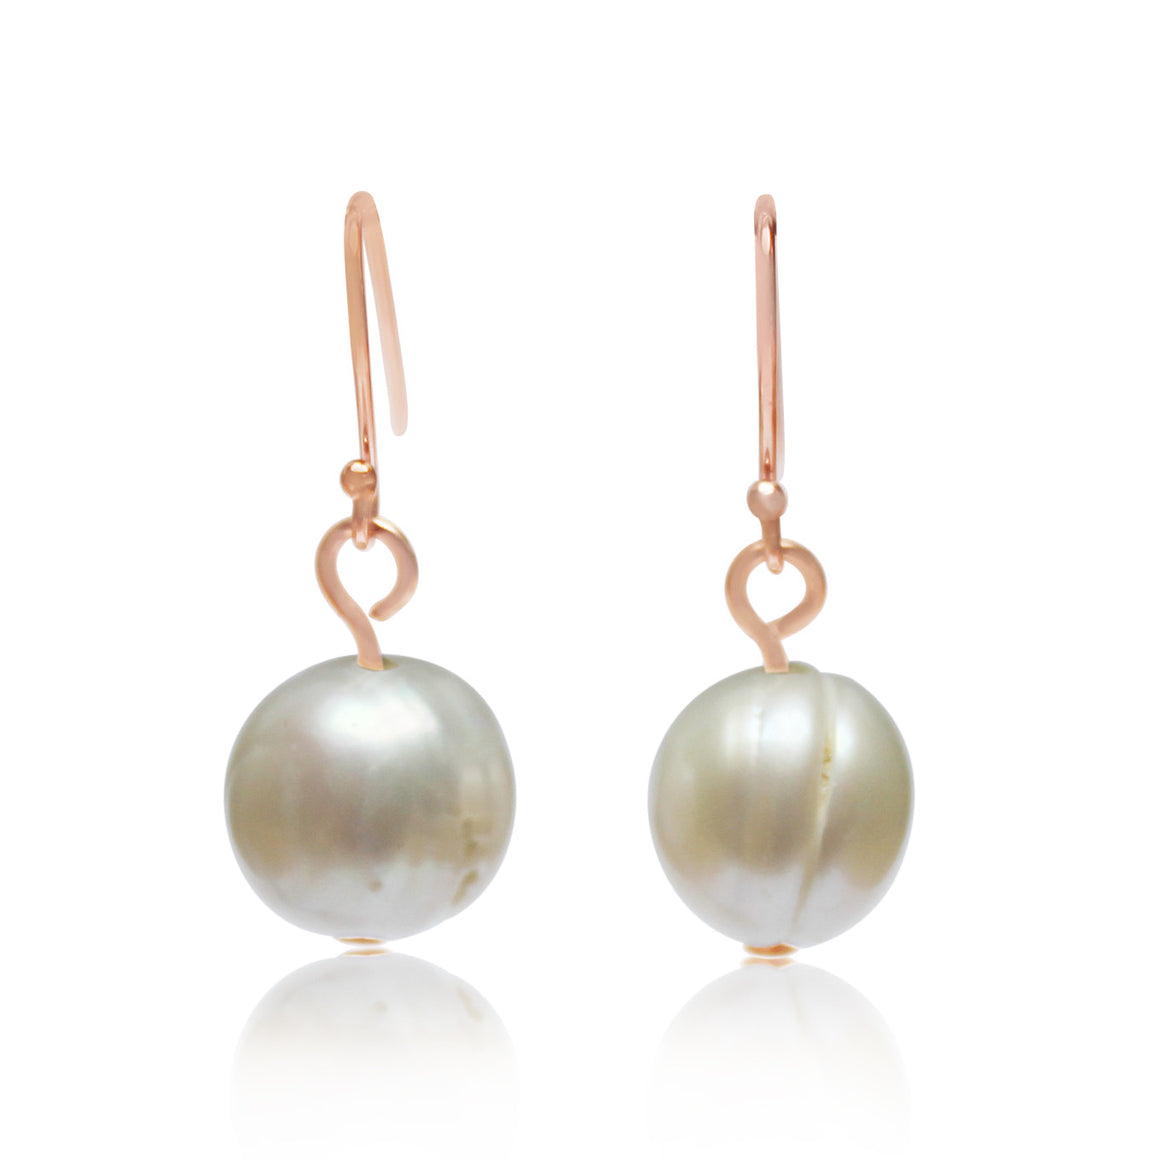 Pearl Earrings (rose gold) - matches the Pearl 10 Way Necklace with rose gold magnets